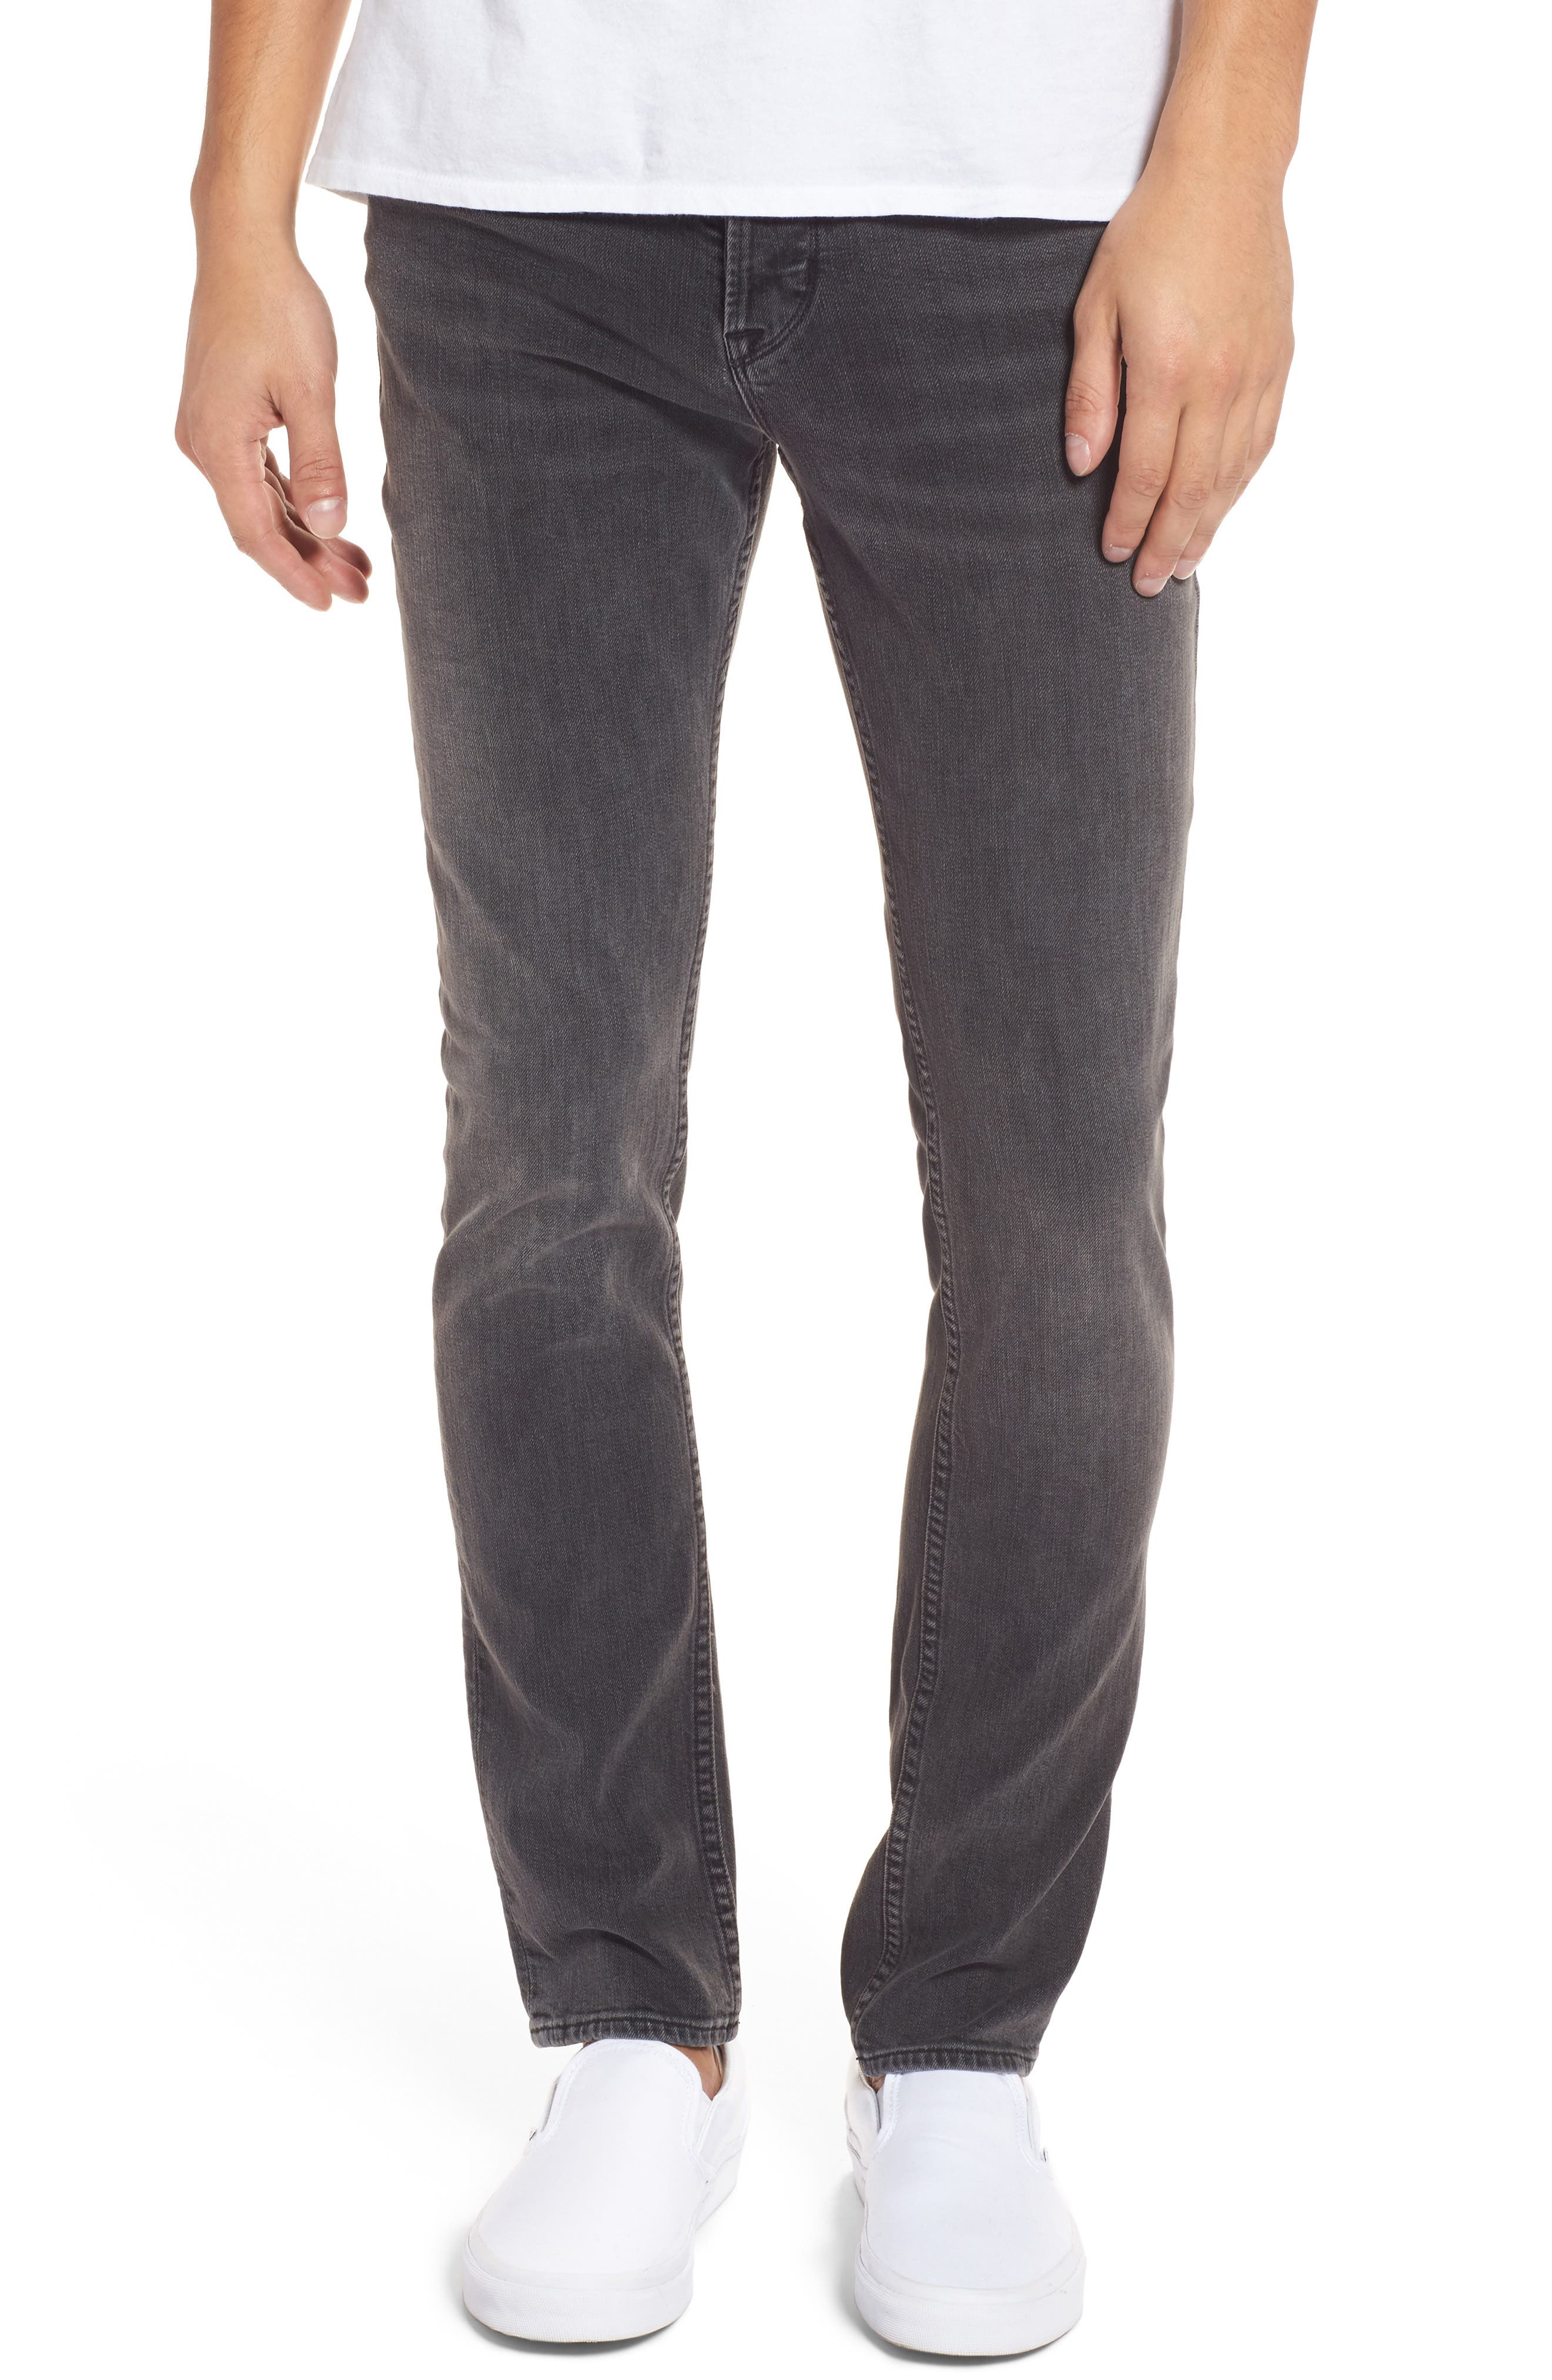 Axl Skinny Fit Jeans,                         Main,                         color, 020